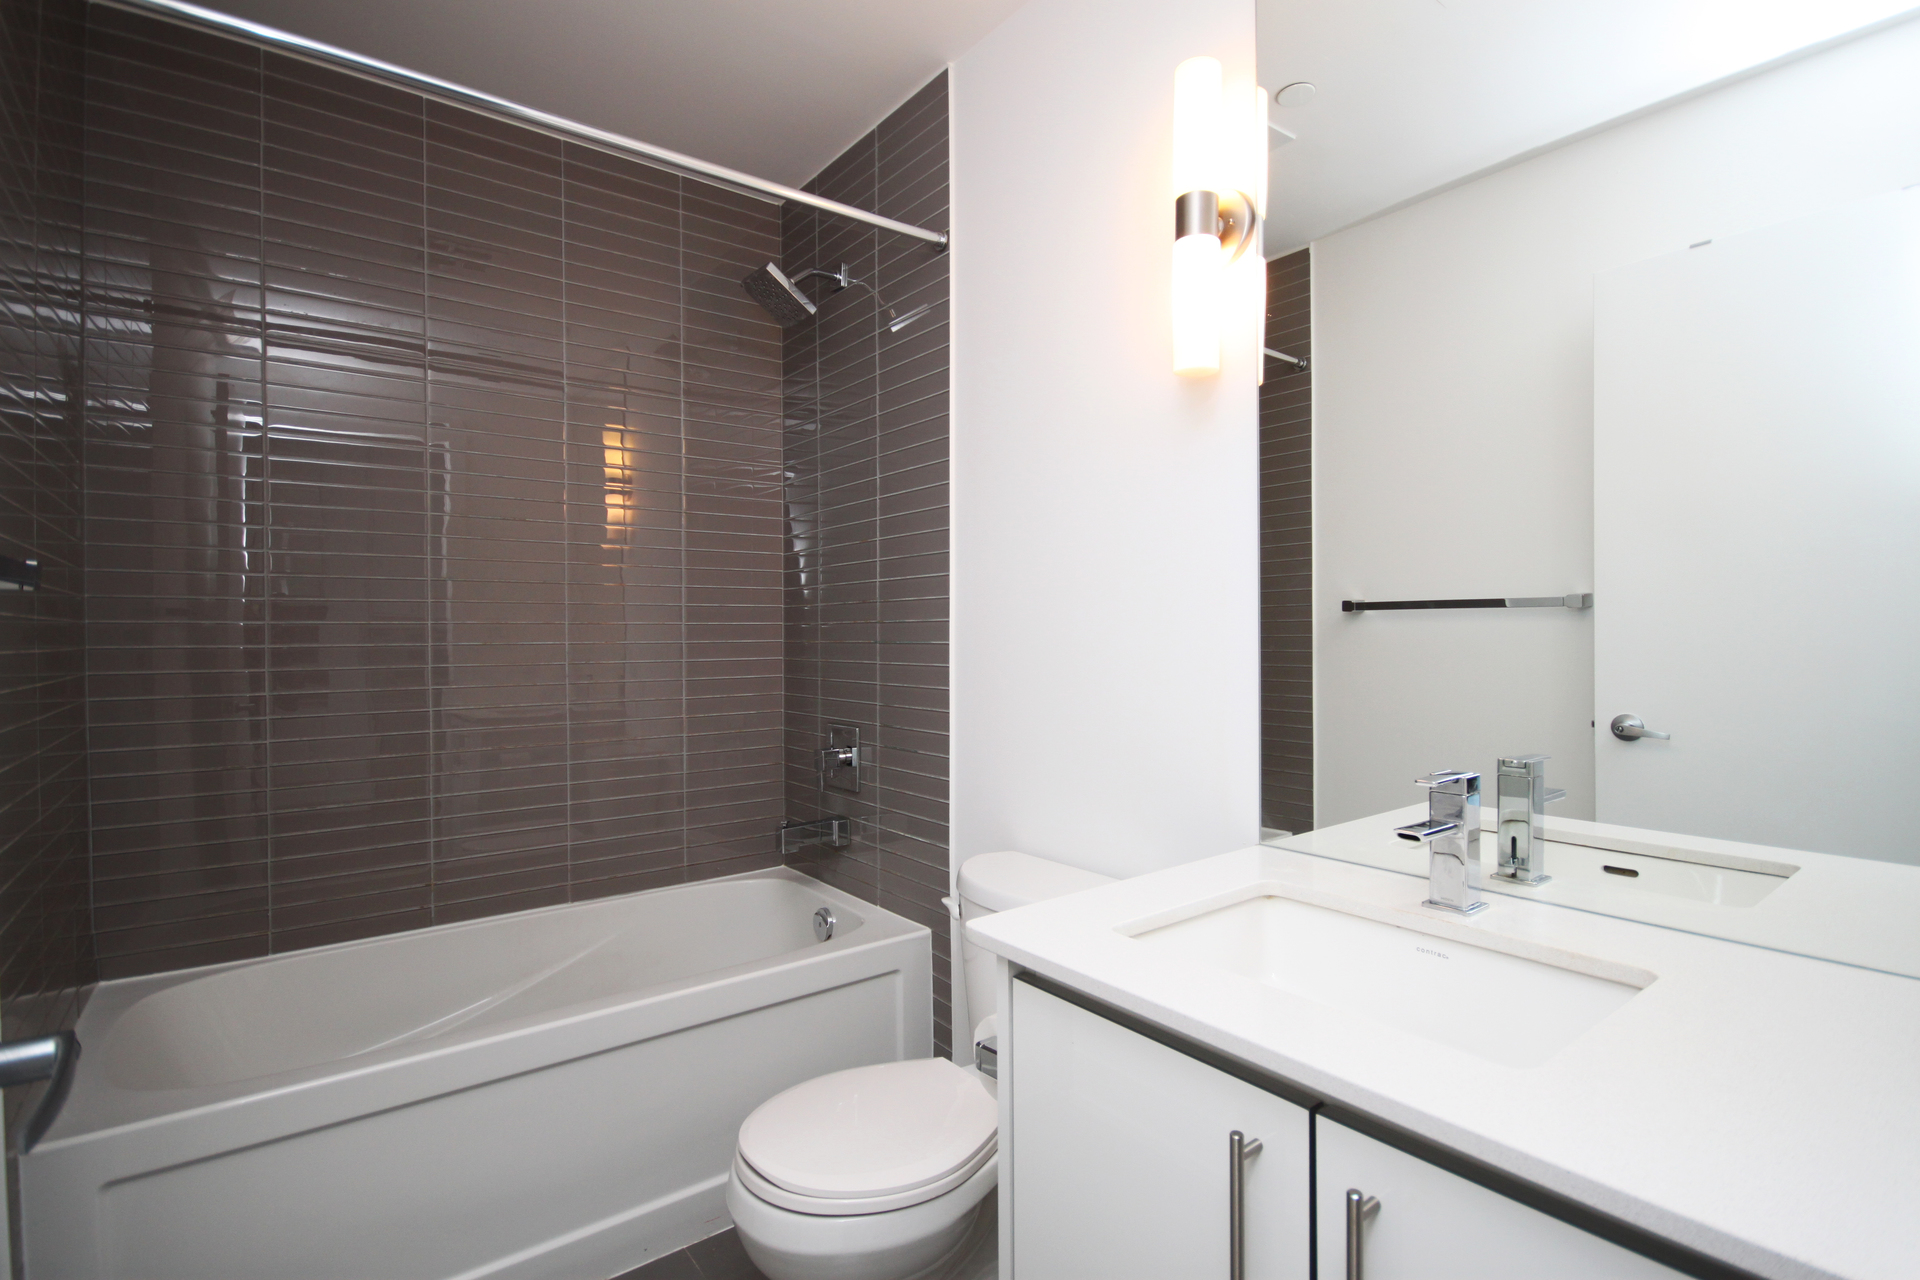 4 Piece Bathroom at 105 - 75 The Donway Donway W, Banbury-Don Mills, Toronto